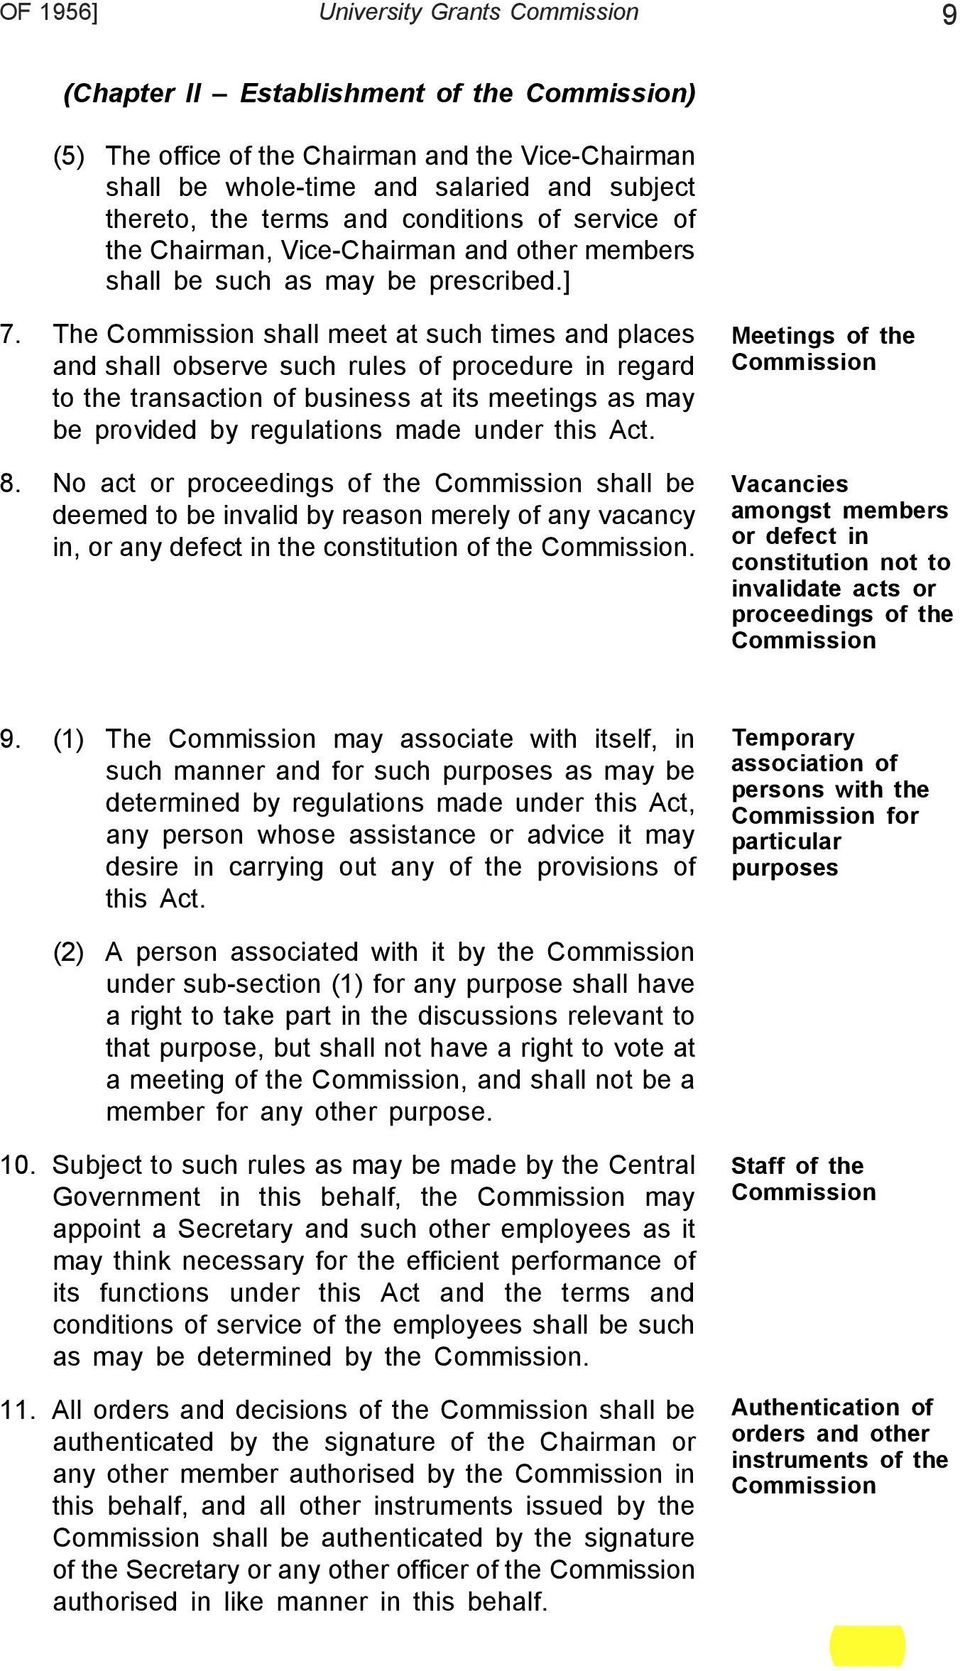 The Commission shall meet at such times and places and shall observe such rules of procedure in regard to the transaction of business at its meetings as may be provided by regulations made under this